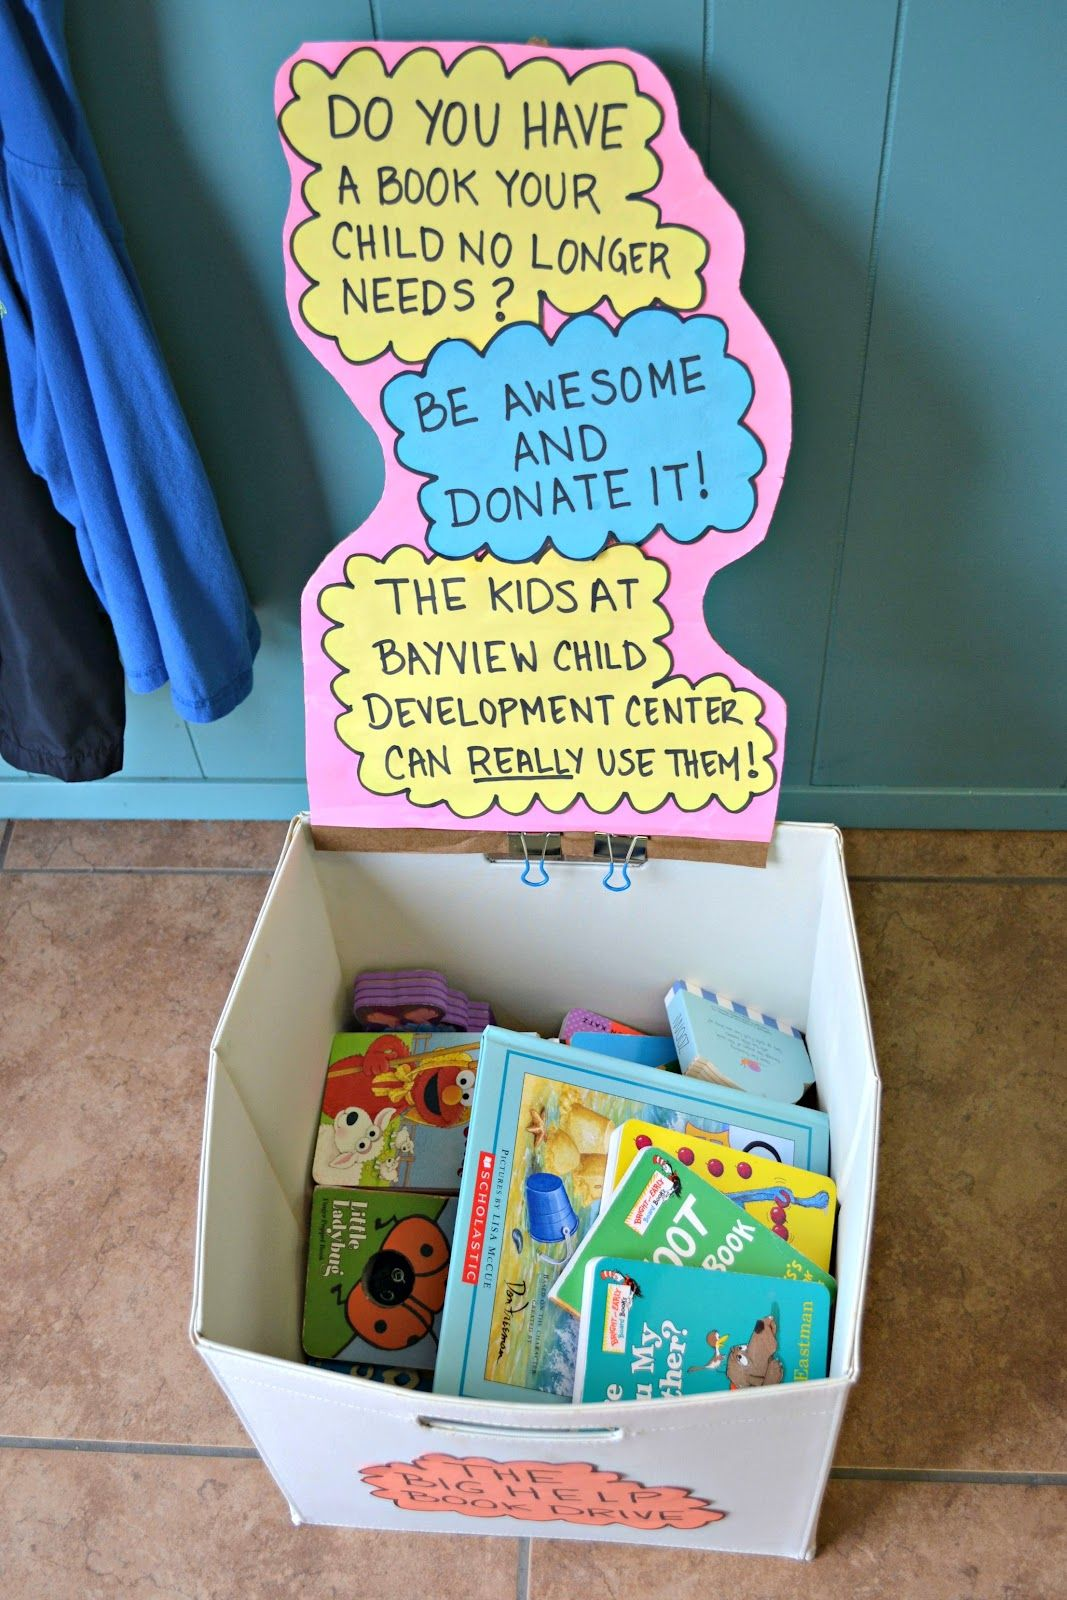 mommy testers sure did fill up her big help book drive donation box